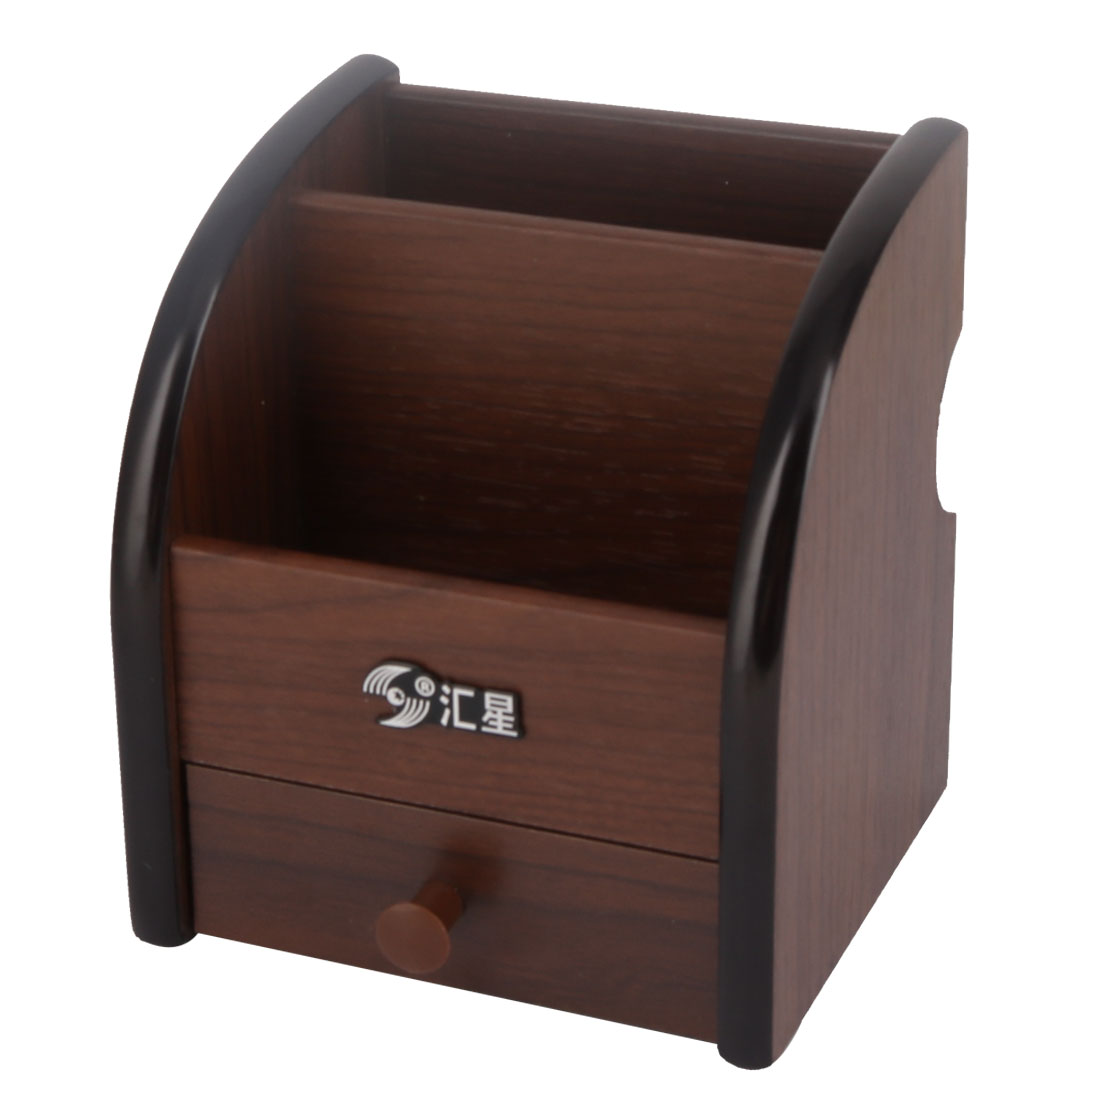 Home Office Desk Wooden Arc Shaped 3 Compartments Drawer Stationery Pen Holder